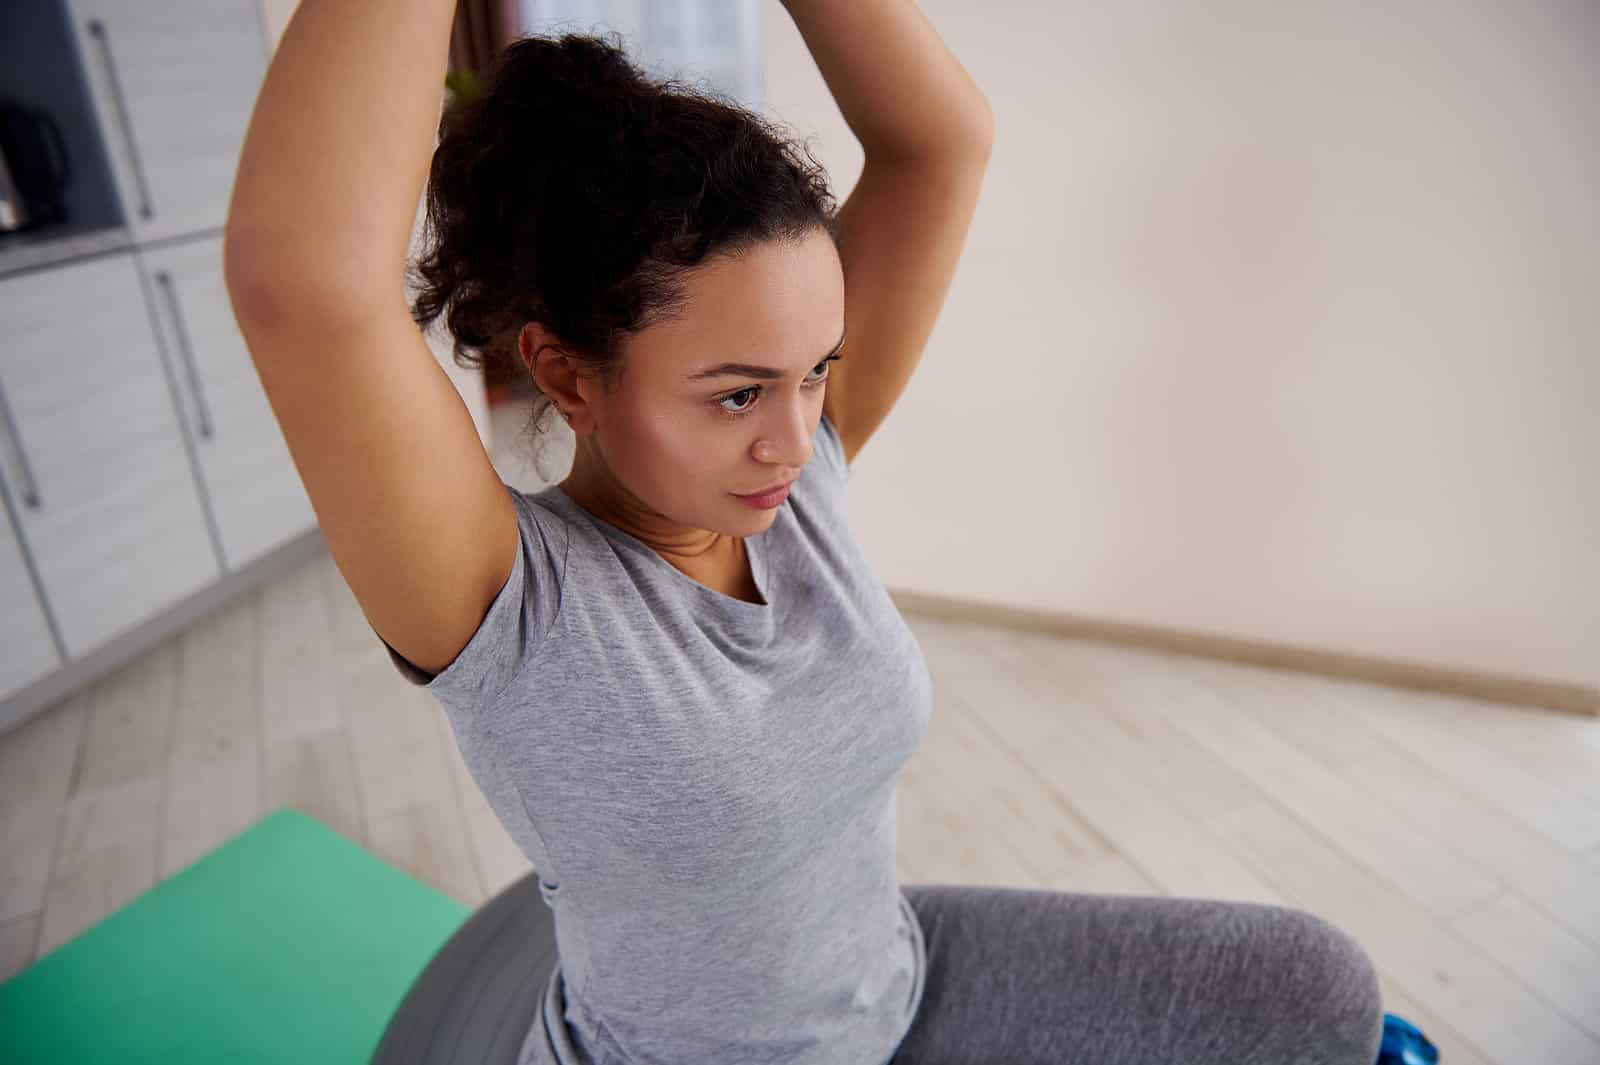 Woman on exercise ball as part of pelvic floor physical therapy